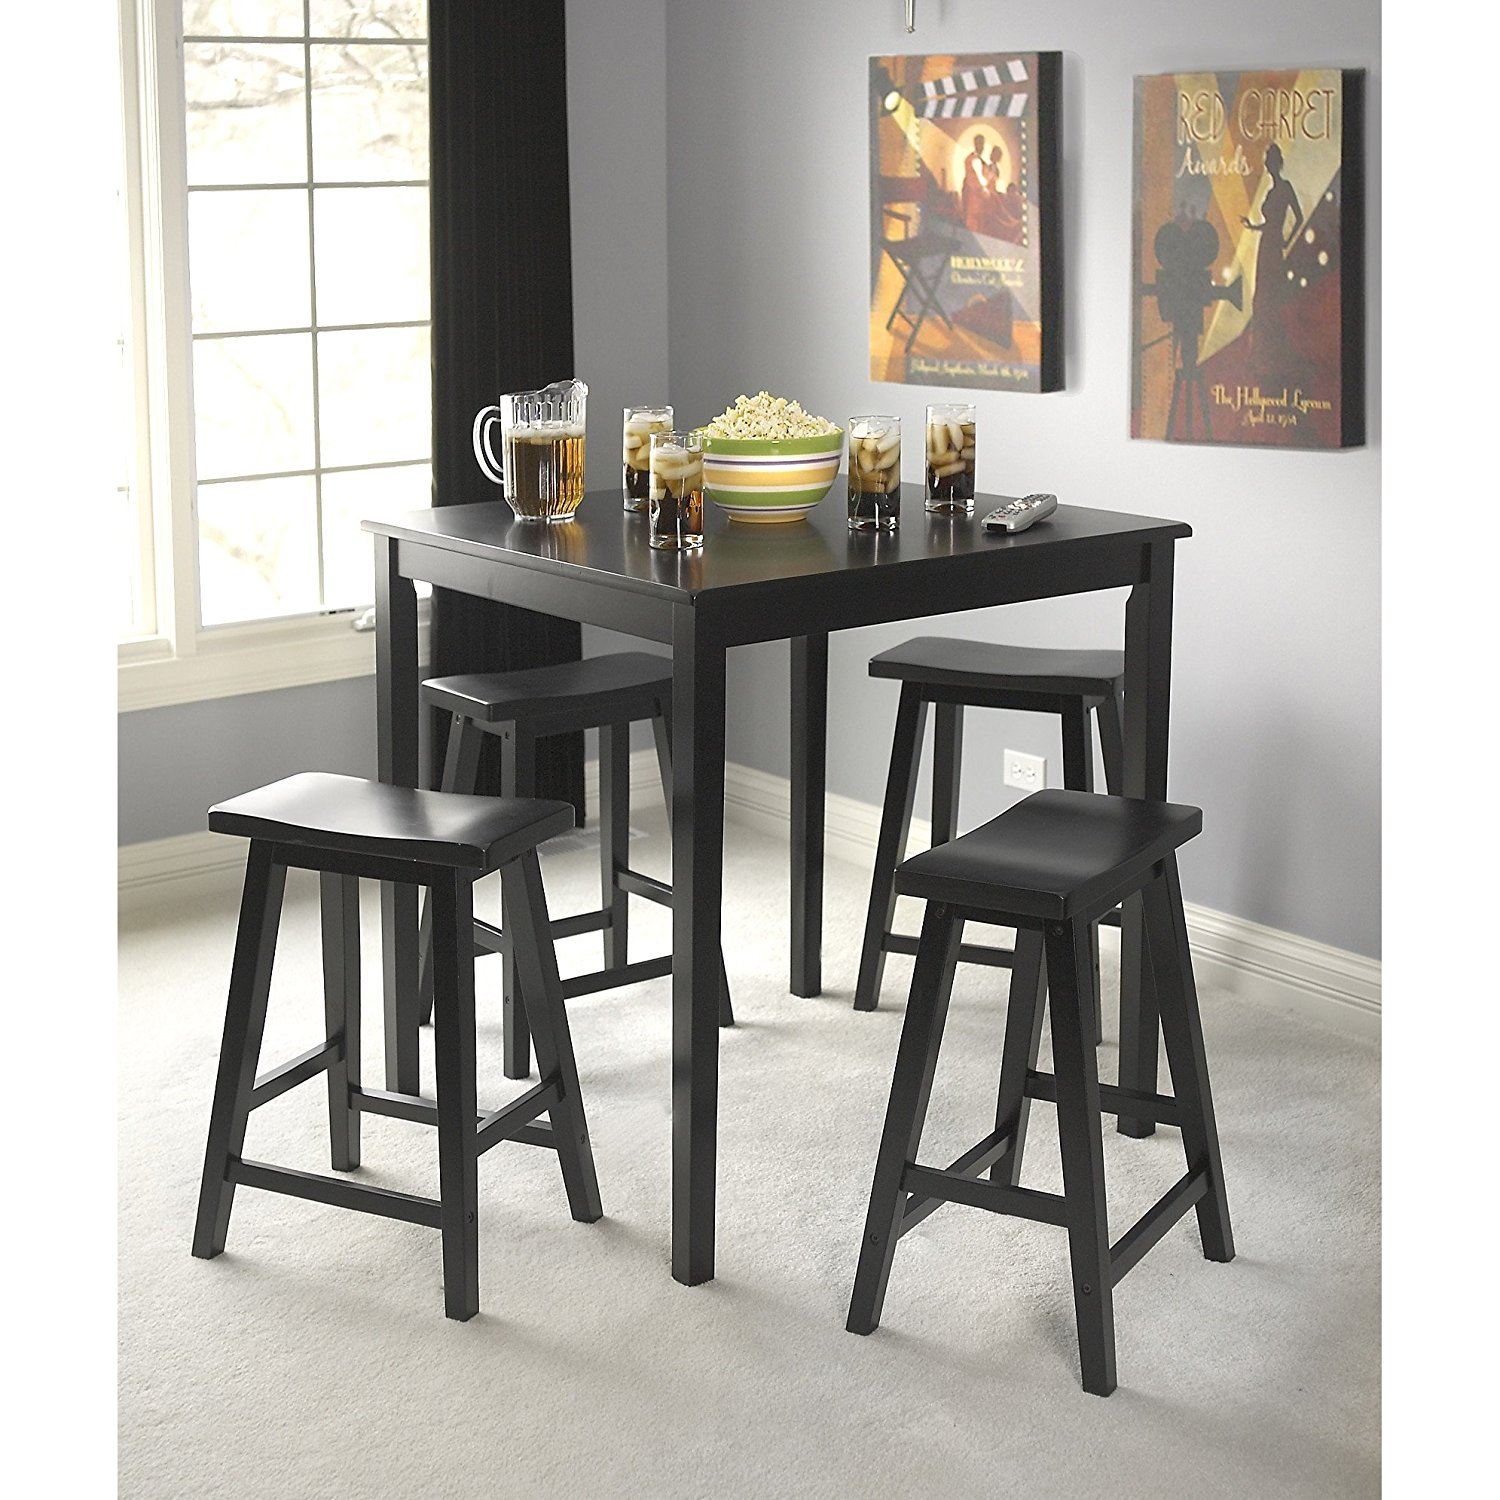 Dining Room Set - Black Modern Rubber Wood 5-Piece Dinette Set - Counter-Height Table and Four Saddle Stools - Square, Five-Piece, Kitchen, Breakfast Table, Perfect Design